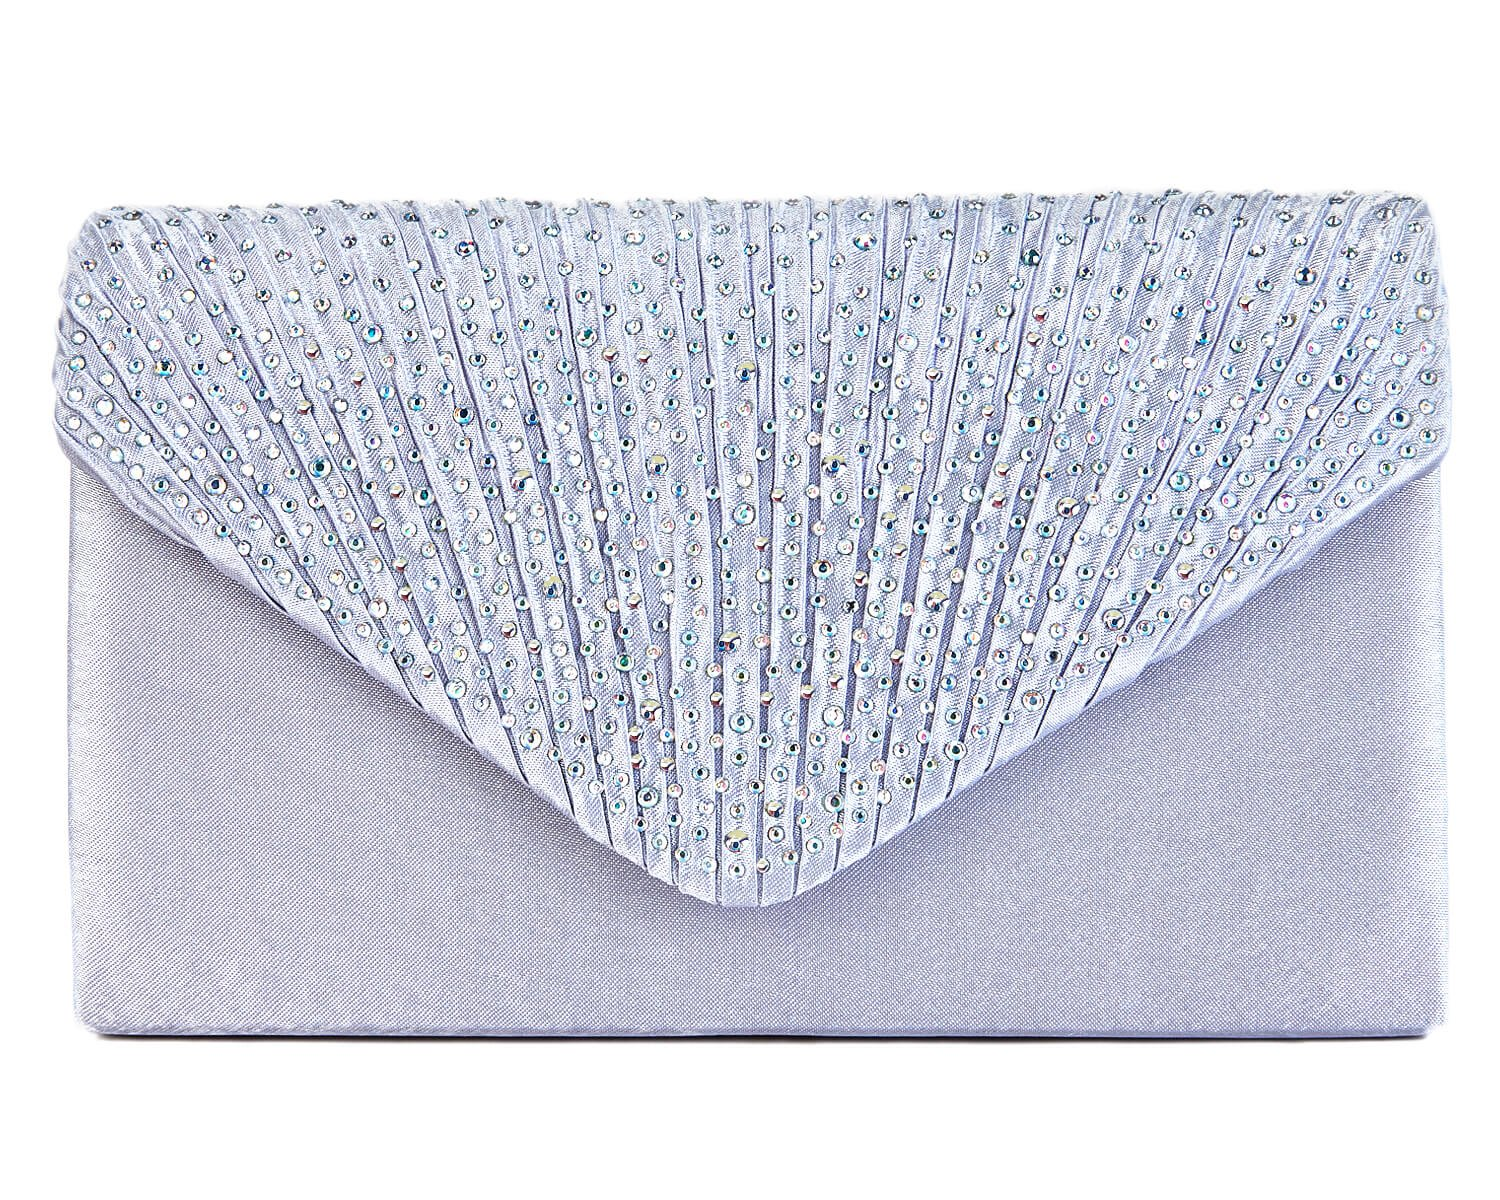 Charming Tailor Clutch Purse Evening Bag Envelope Diamante and Pleated Flap Handbag (Silver)